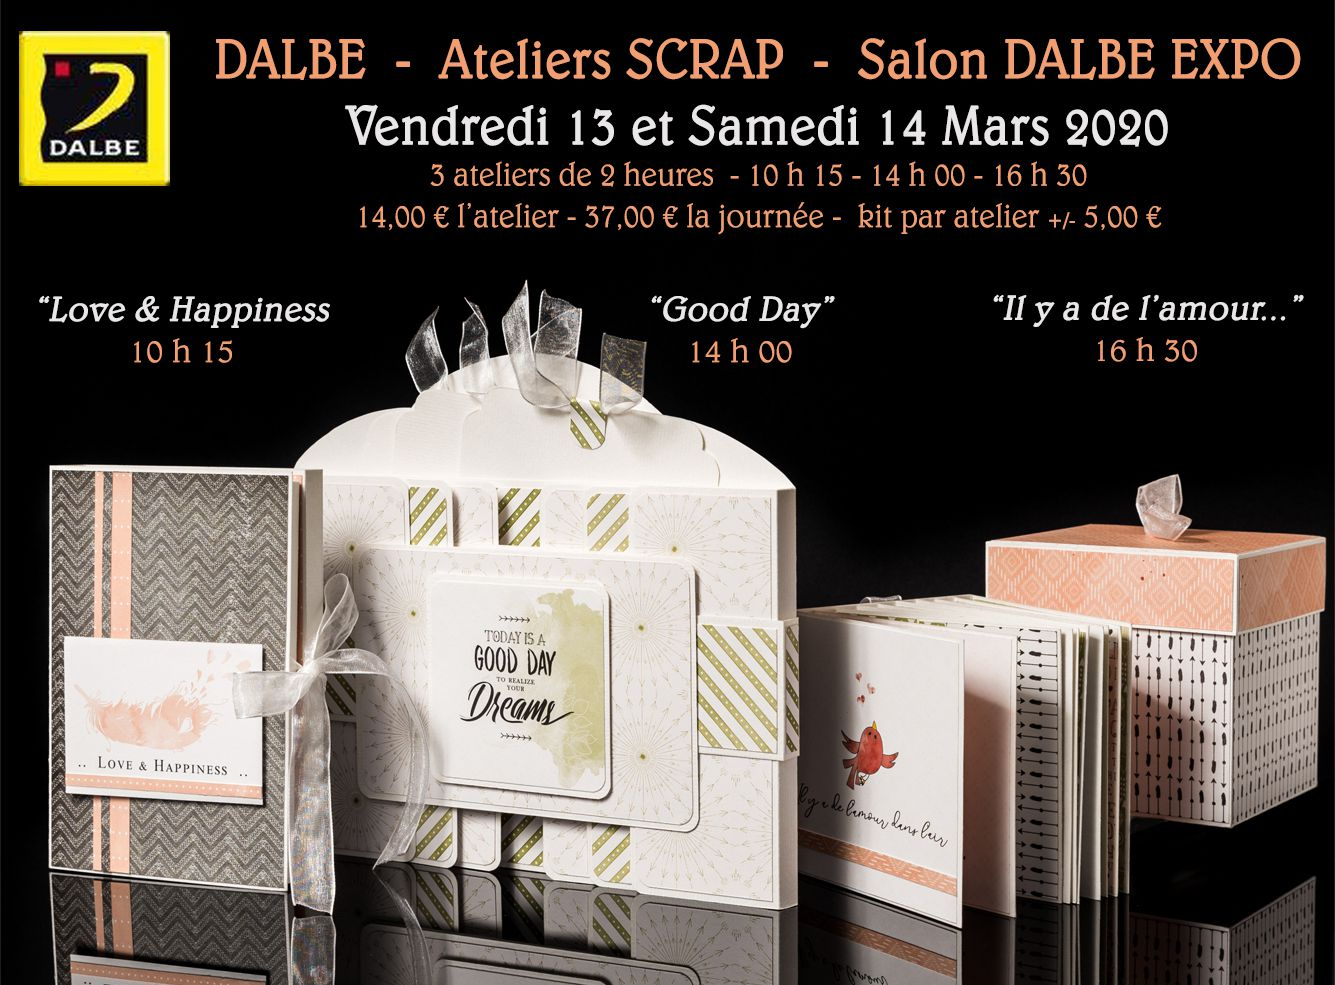 DALBE - Salon Dalbe Expo 2020 - L'Amour dans l'air  3/3